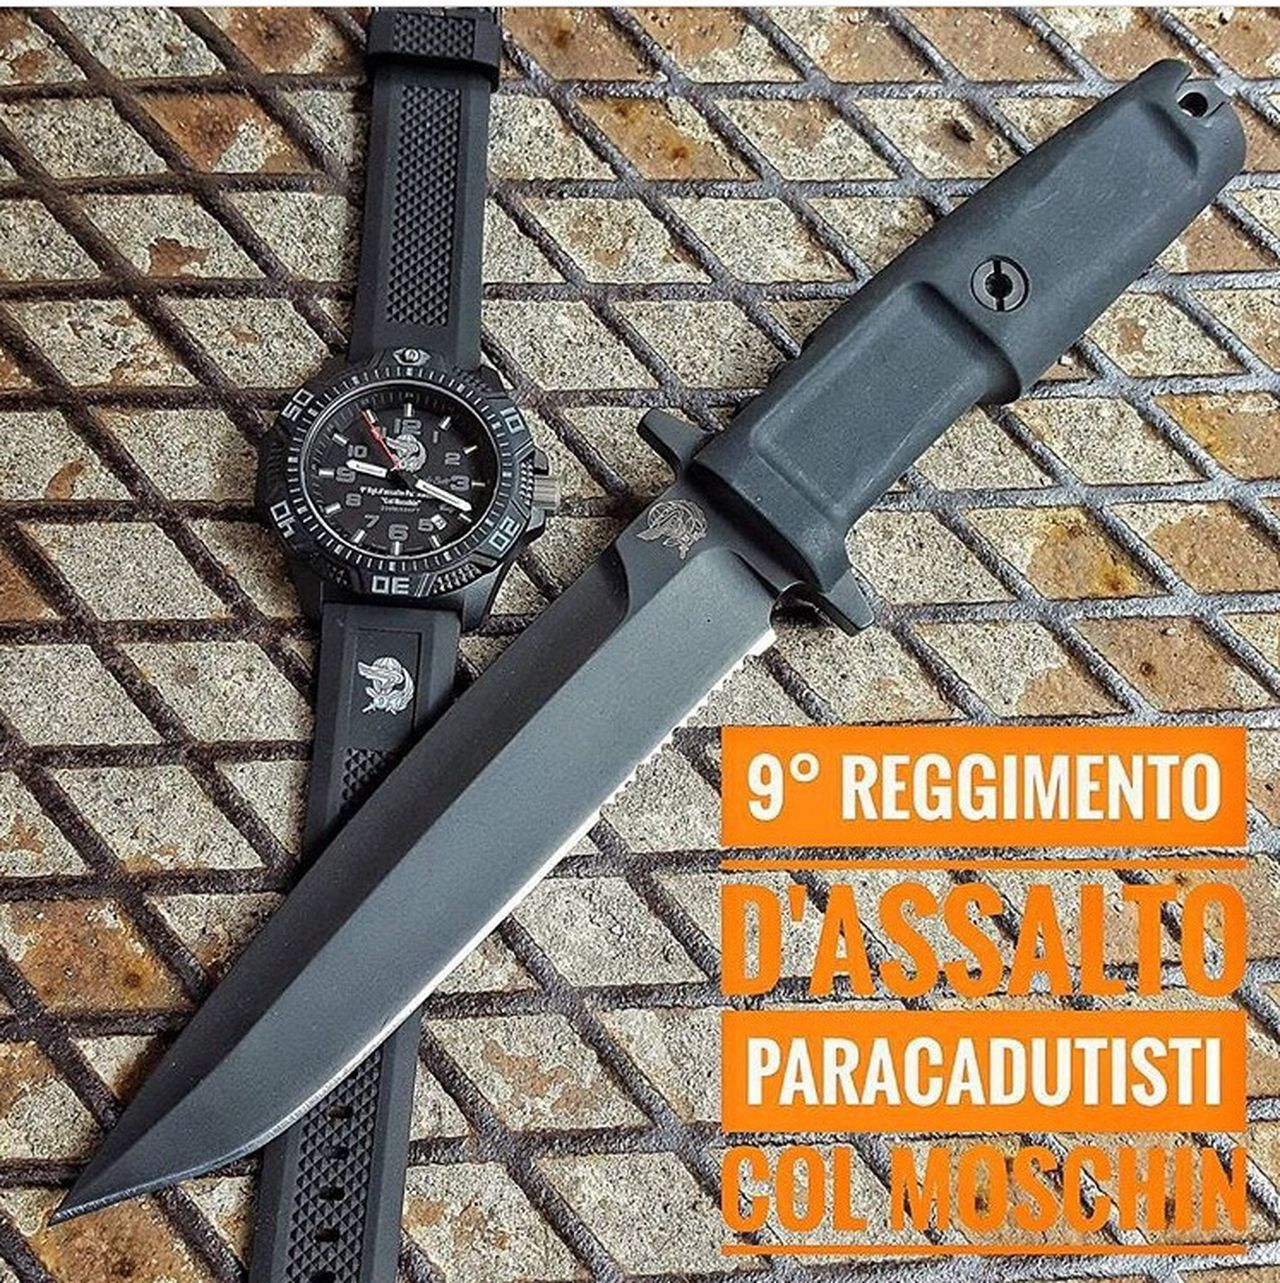 Col Moschin tactical knife with Memphis Belle watch model Guastatore Follow 👉 @coltelleriacollini 👈 to have fresh updates everyday! First Eyeem Photo Knives Knife Blades Watch Watch The Clock Tactical Army Military